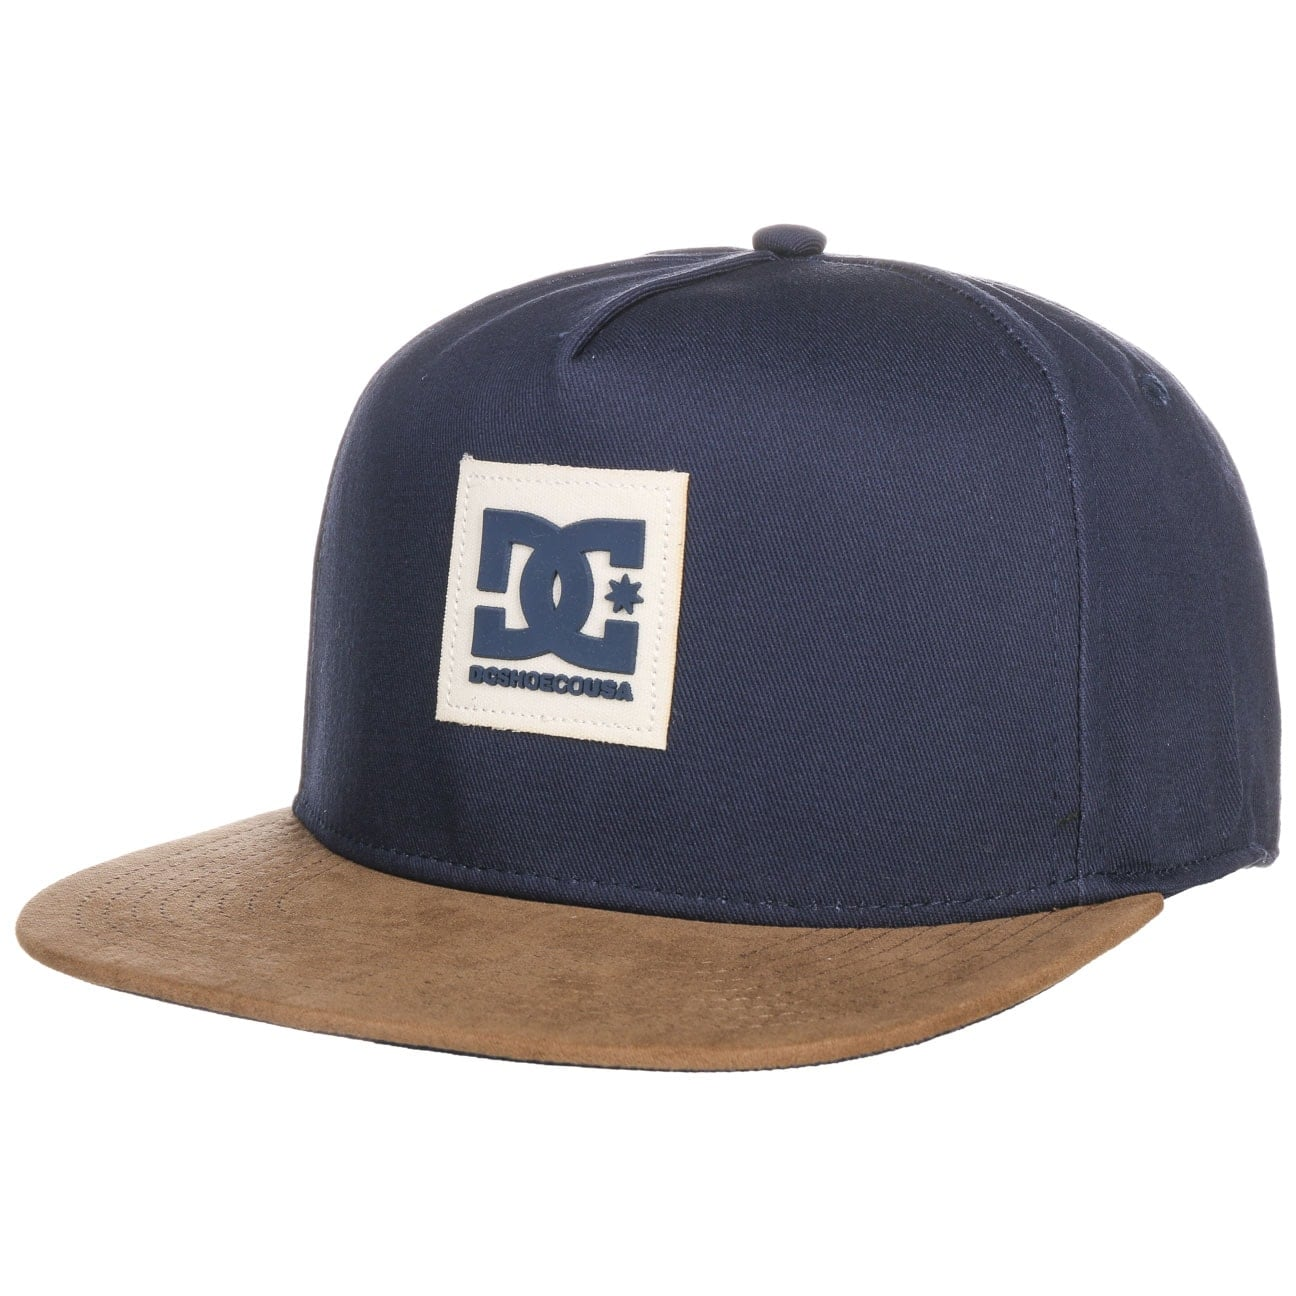 Gorra Snapback Dacks by DC Shoes Co  gorra plana